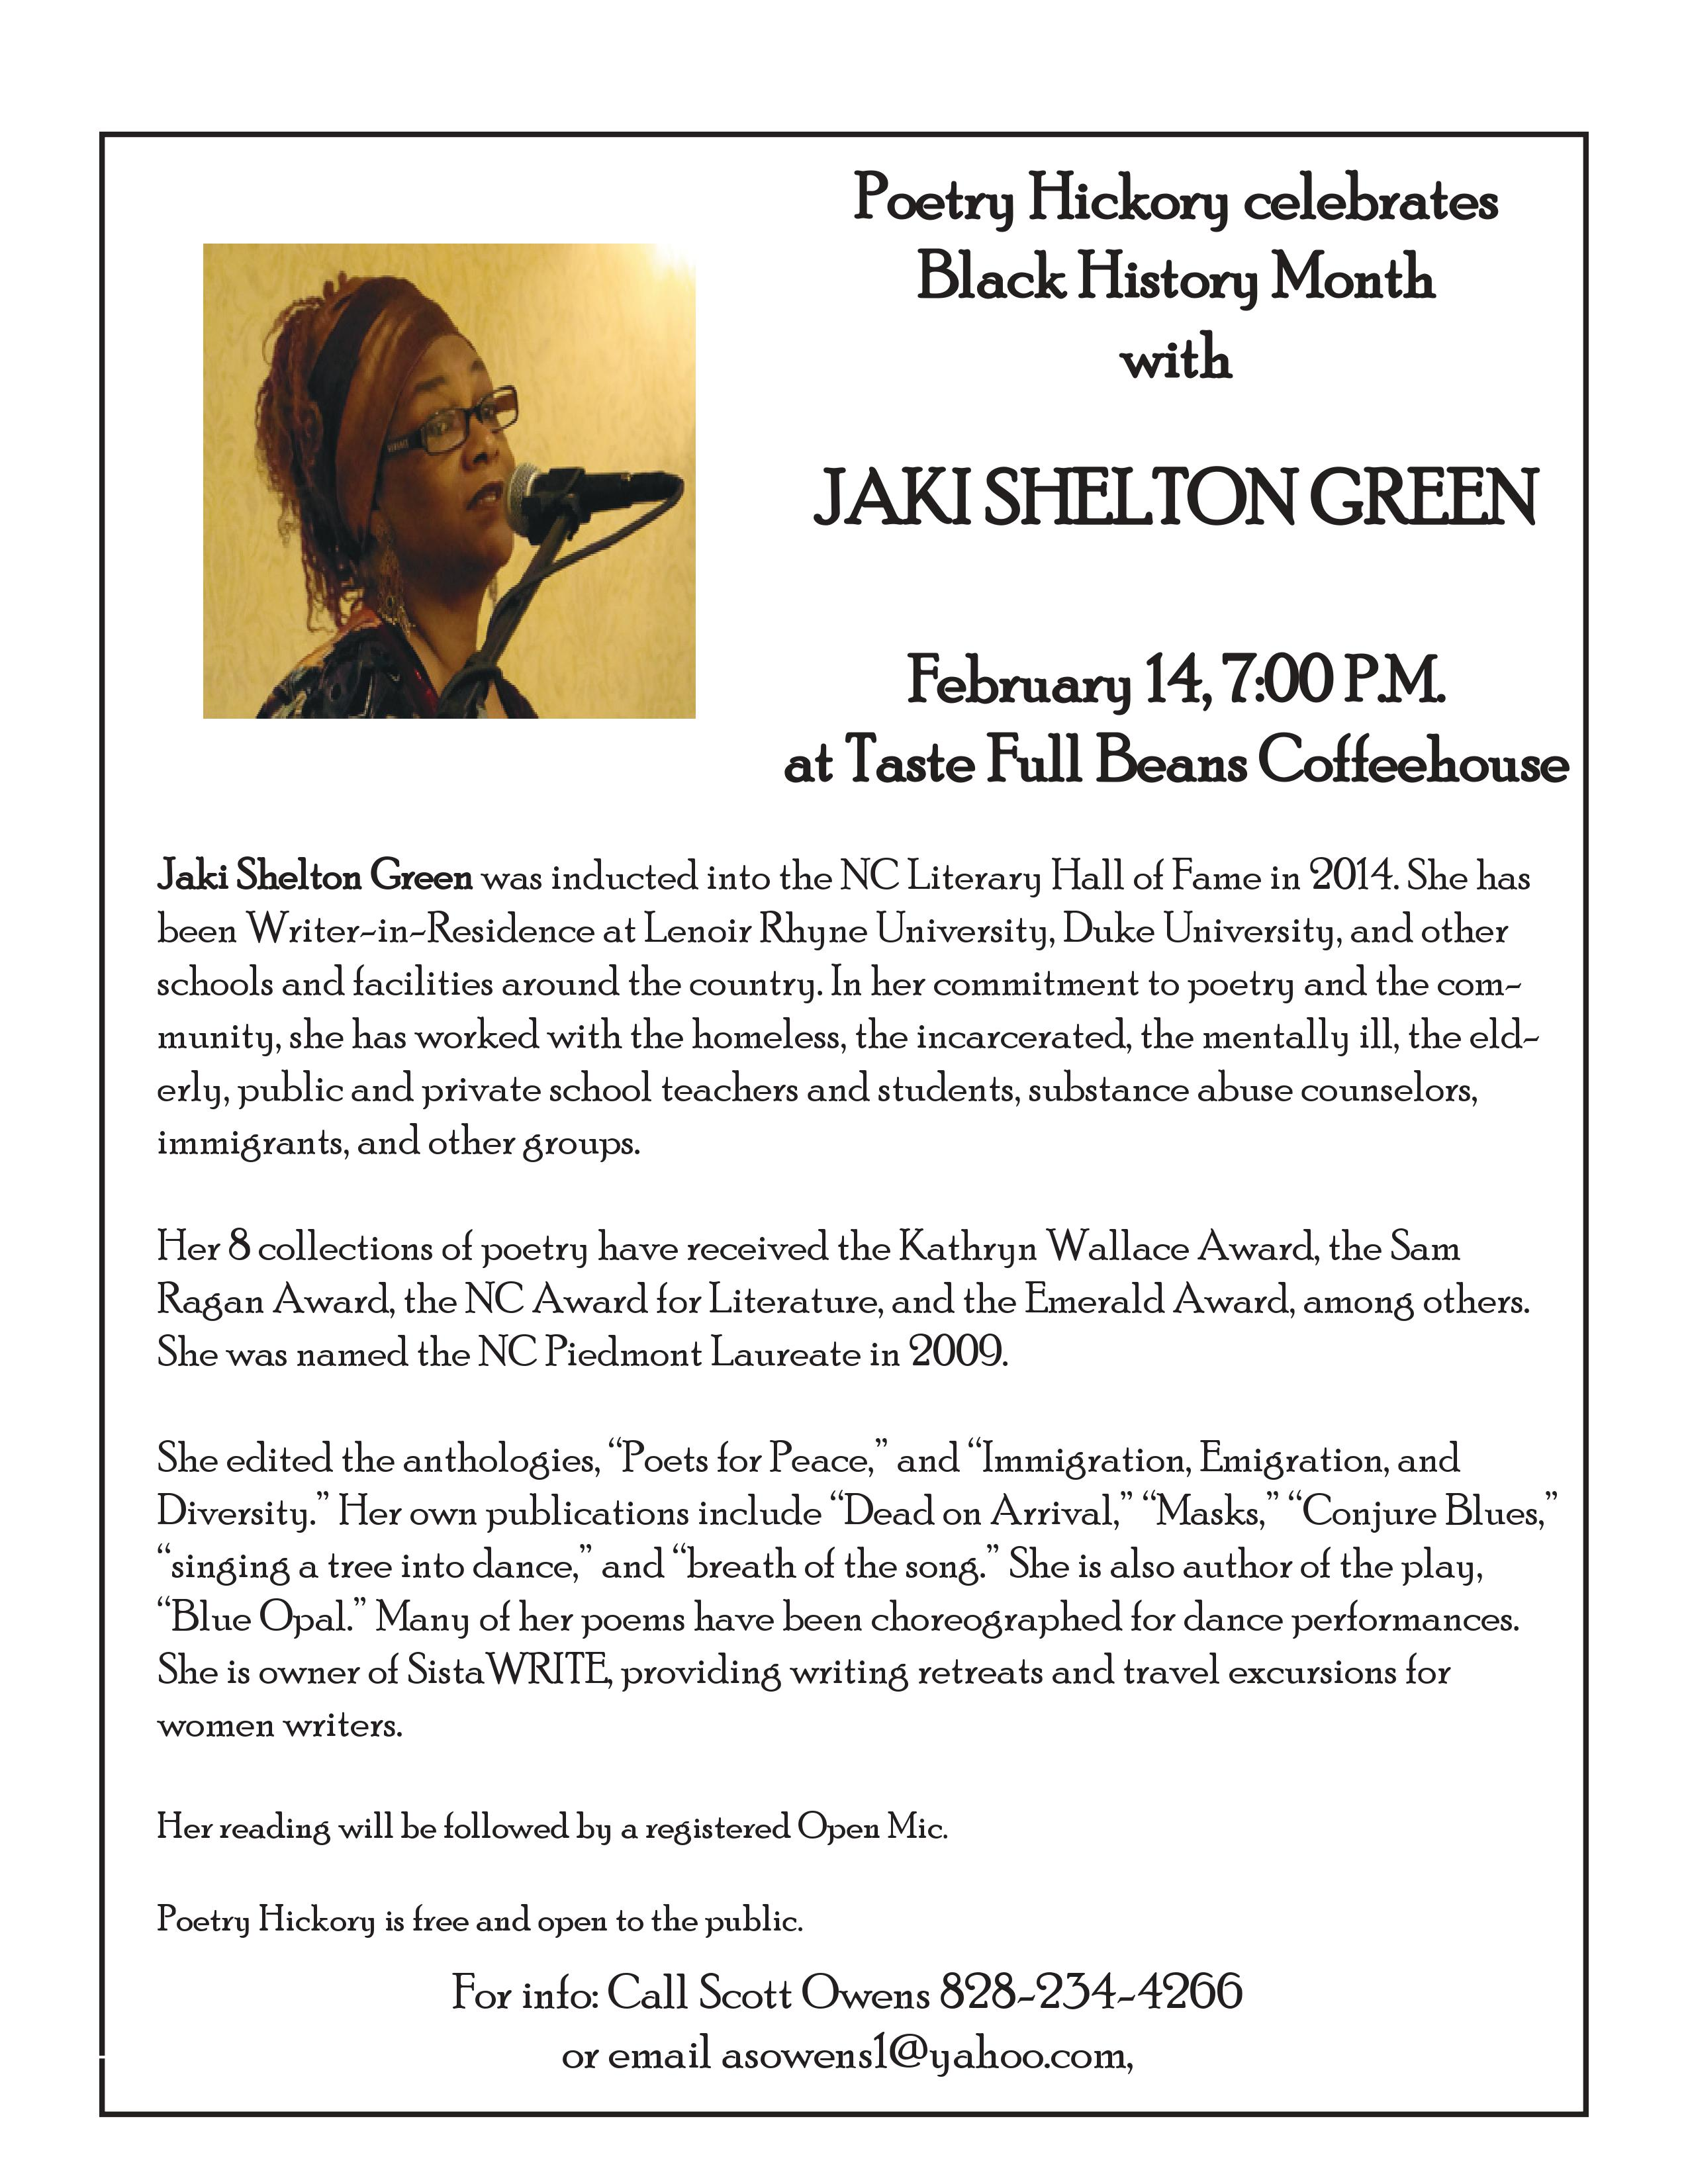 Poetry Hickory Celebrates Black History Month With Jaki